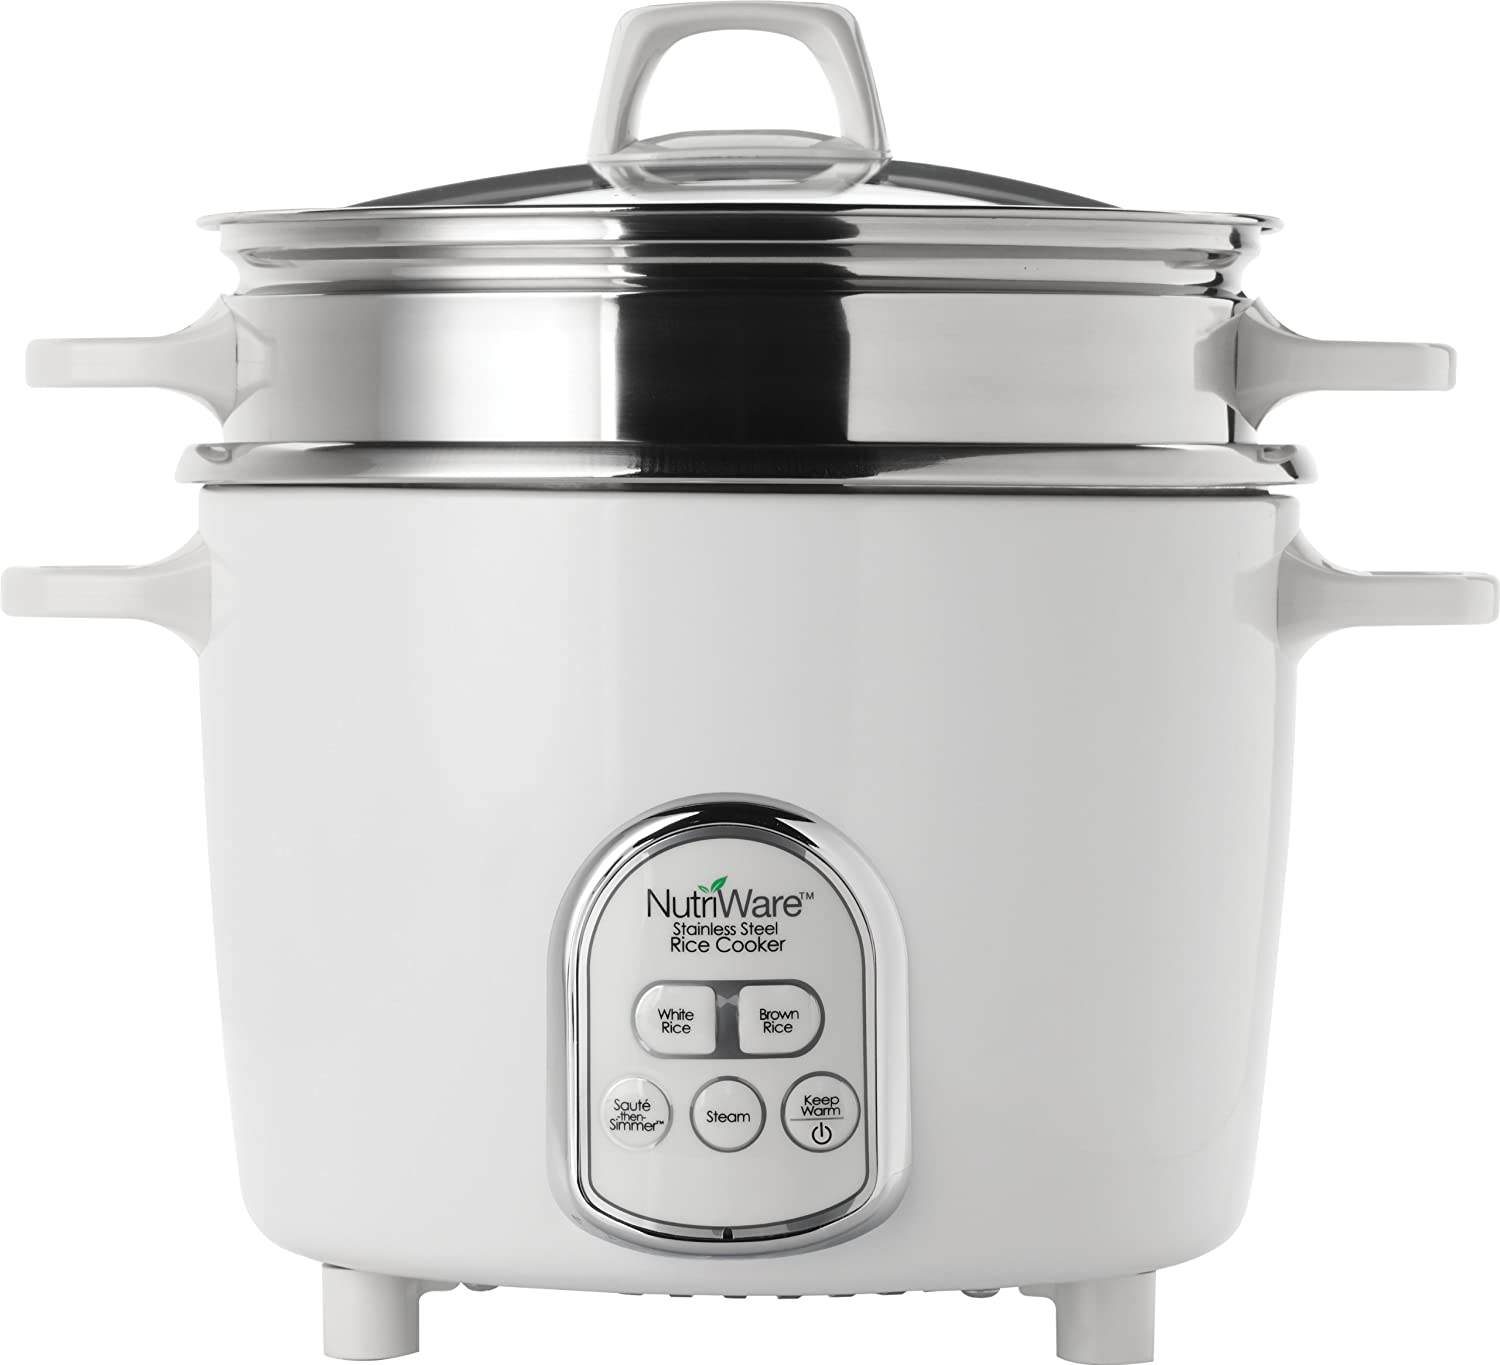 Amazon.com: Aroma Housewares NutriWare 14-Cup (Cooked) Digital Rice Cooker  and Food Steamer, White: Stainless Steel Rice Cooker: Kitchen & Dining